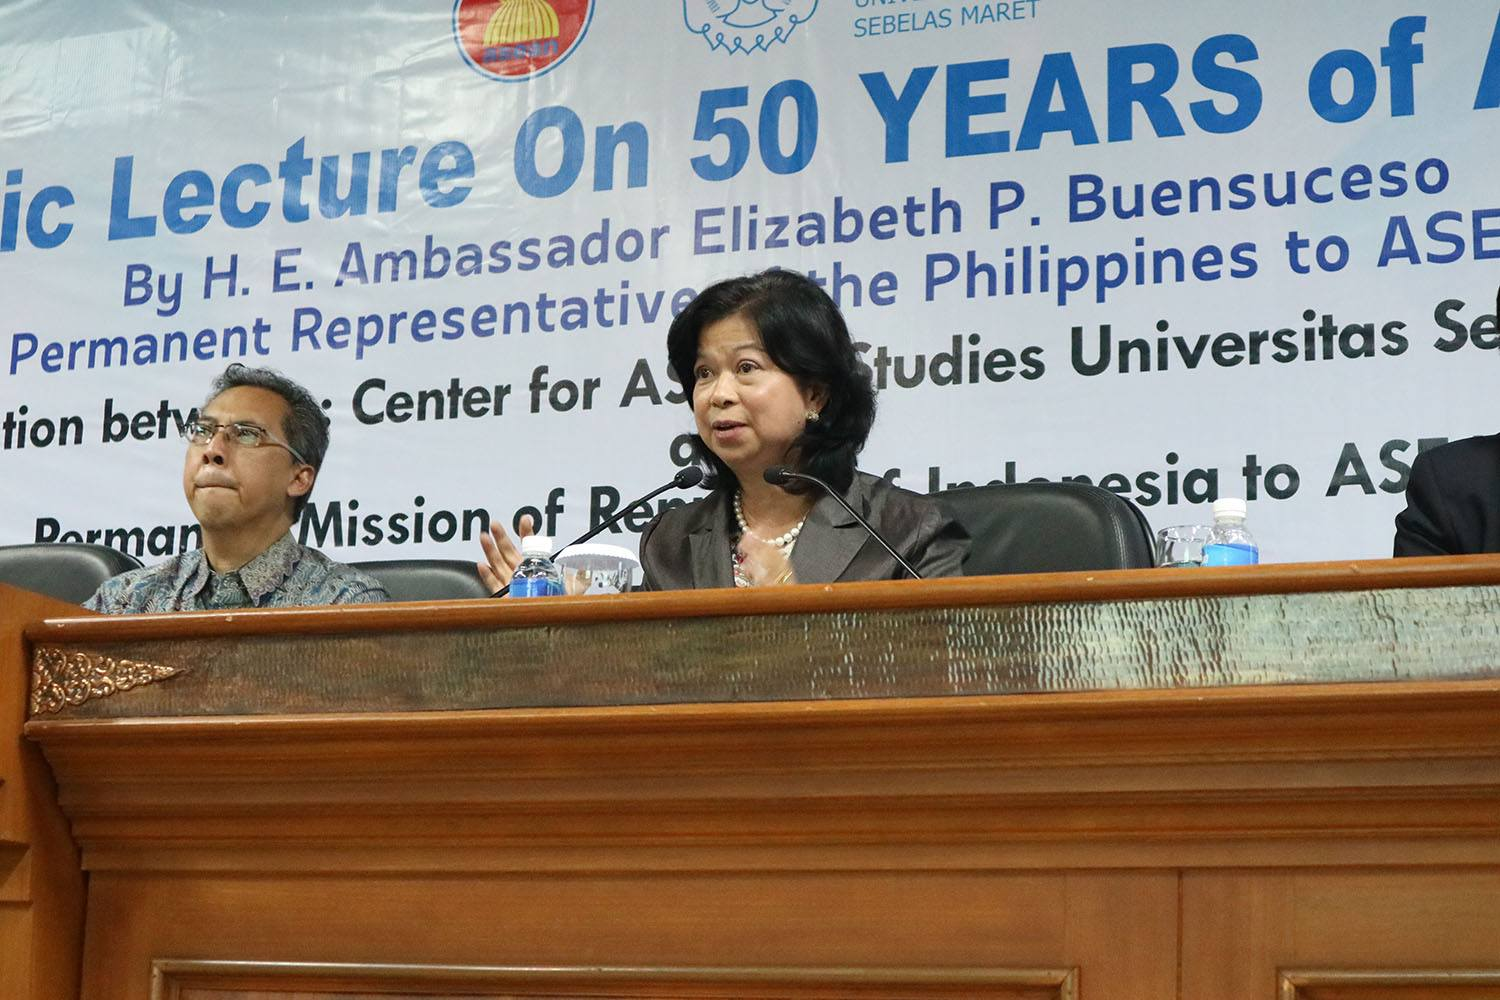 Visiting UNS, ASEAN Ambassador Gives General Lecture on ASEAN and the Philippines ASEAN Chairmanship